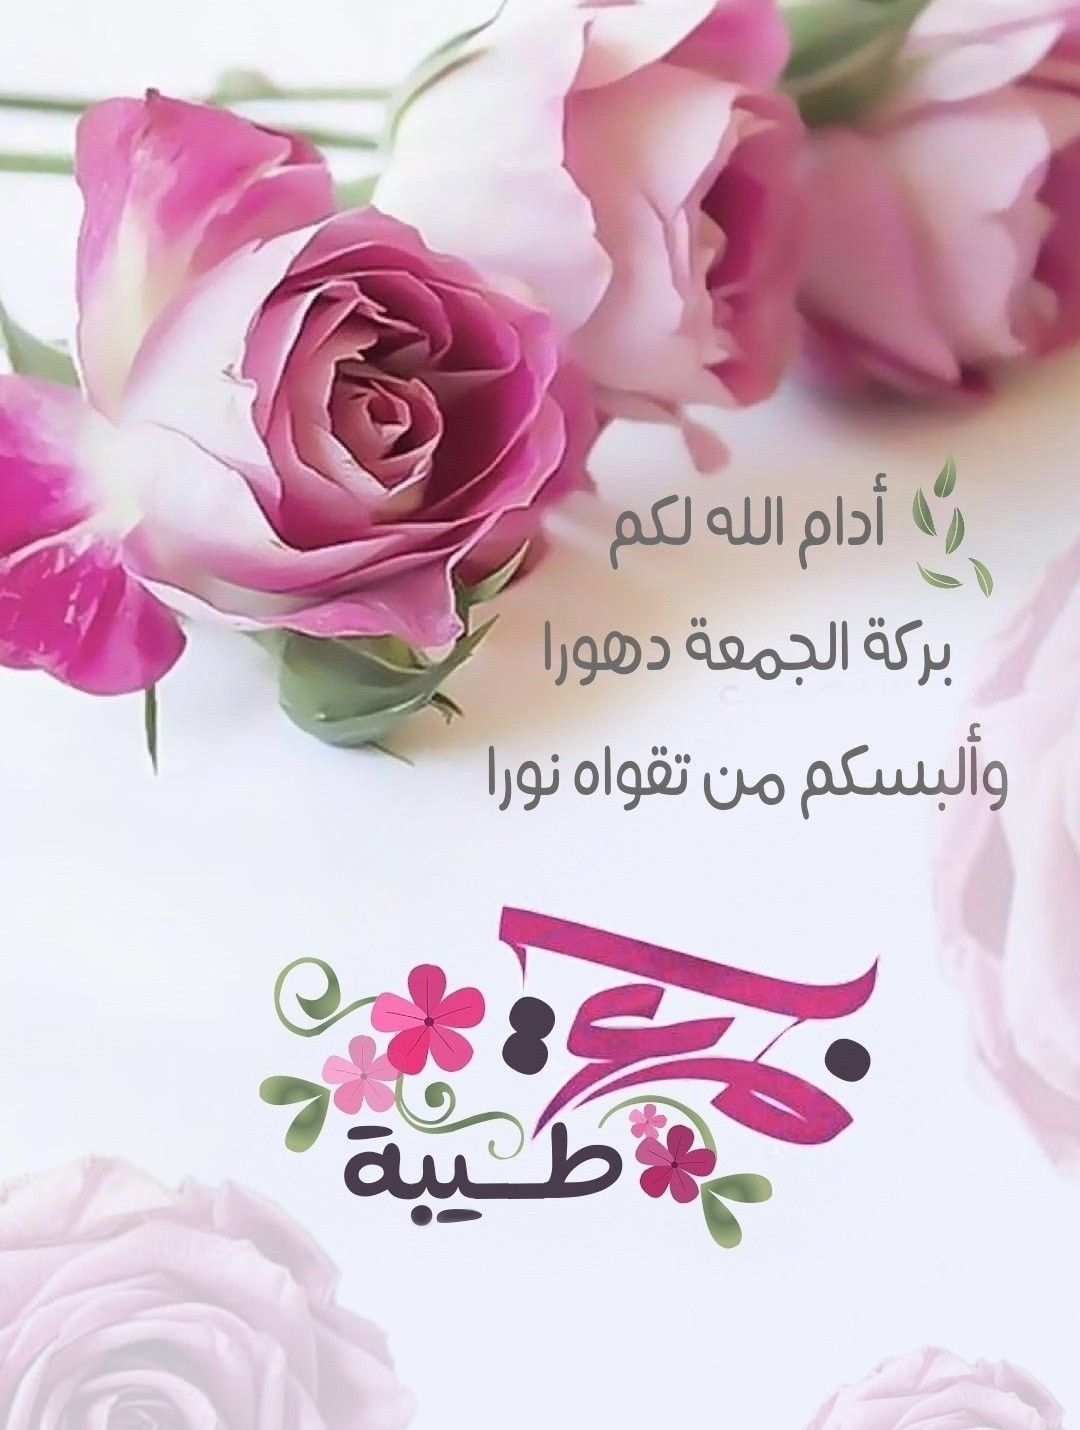 ادعية يوم الجمعة المستجابة Floral Wallpaper Phone Beautiful Morning Messages Good Prayers